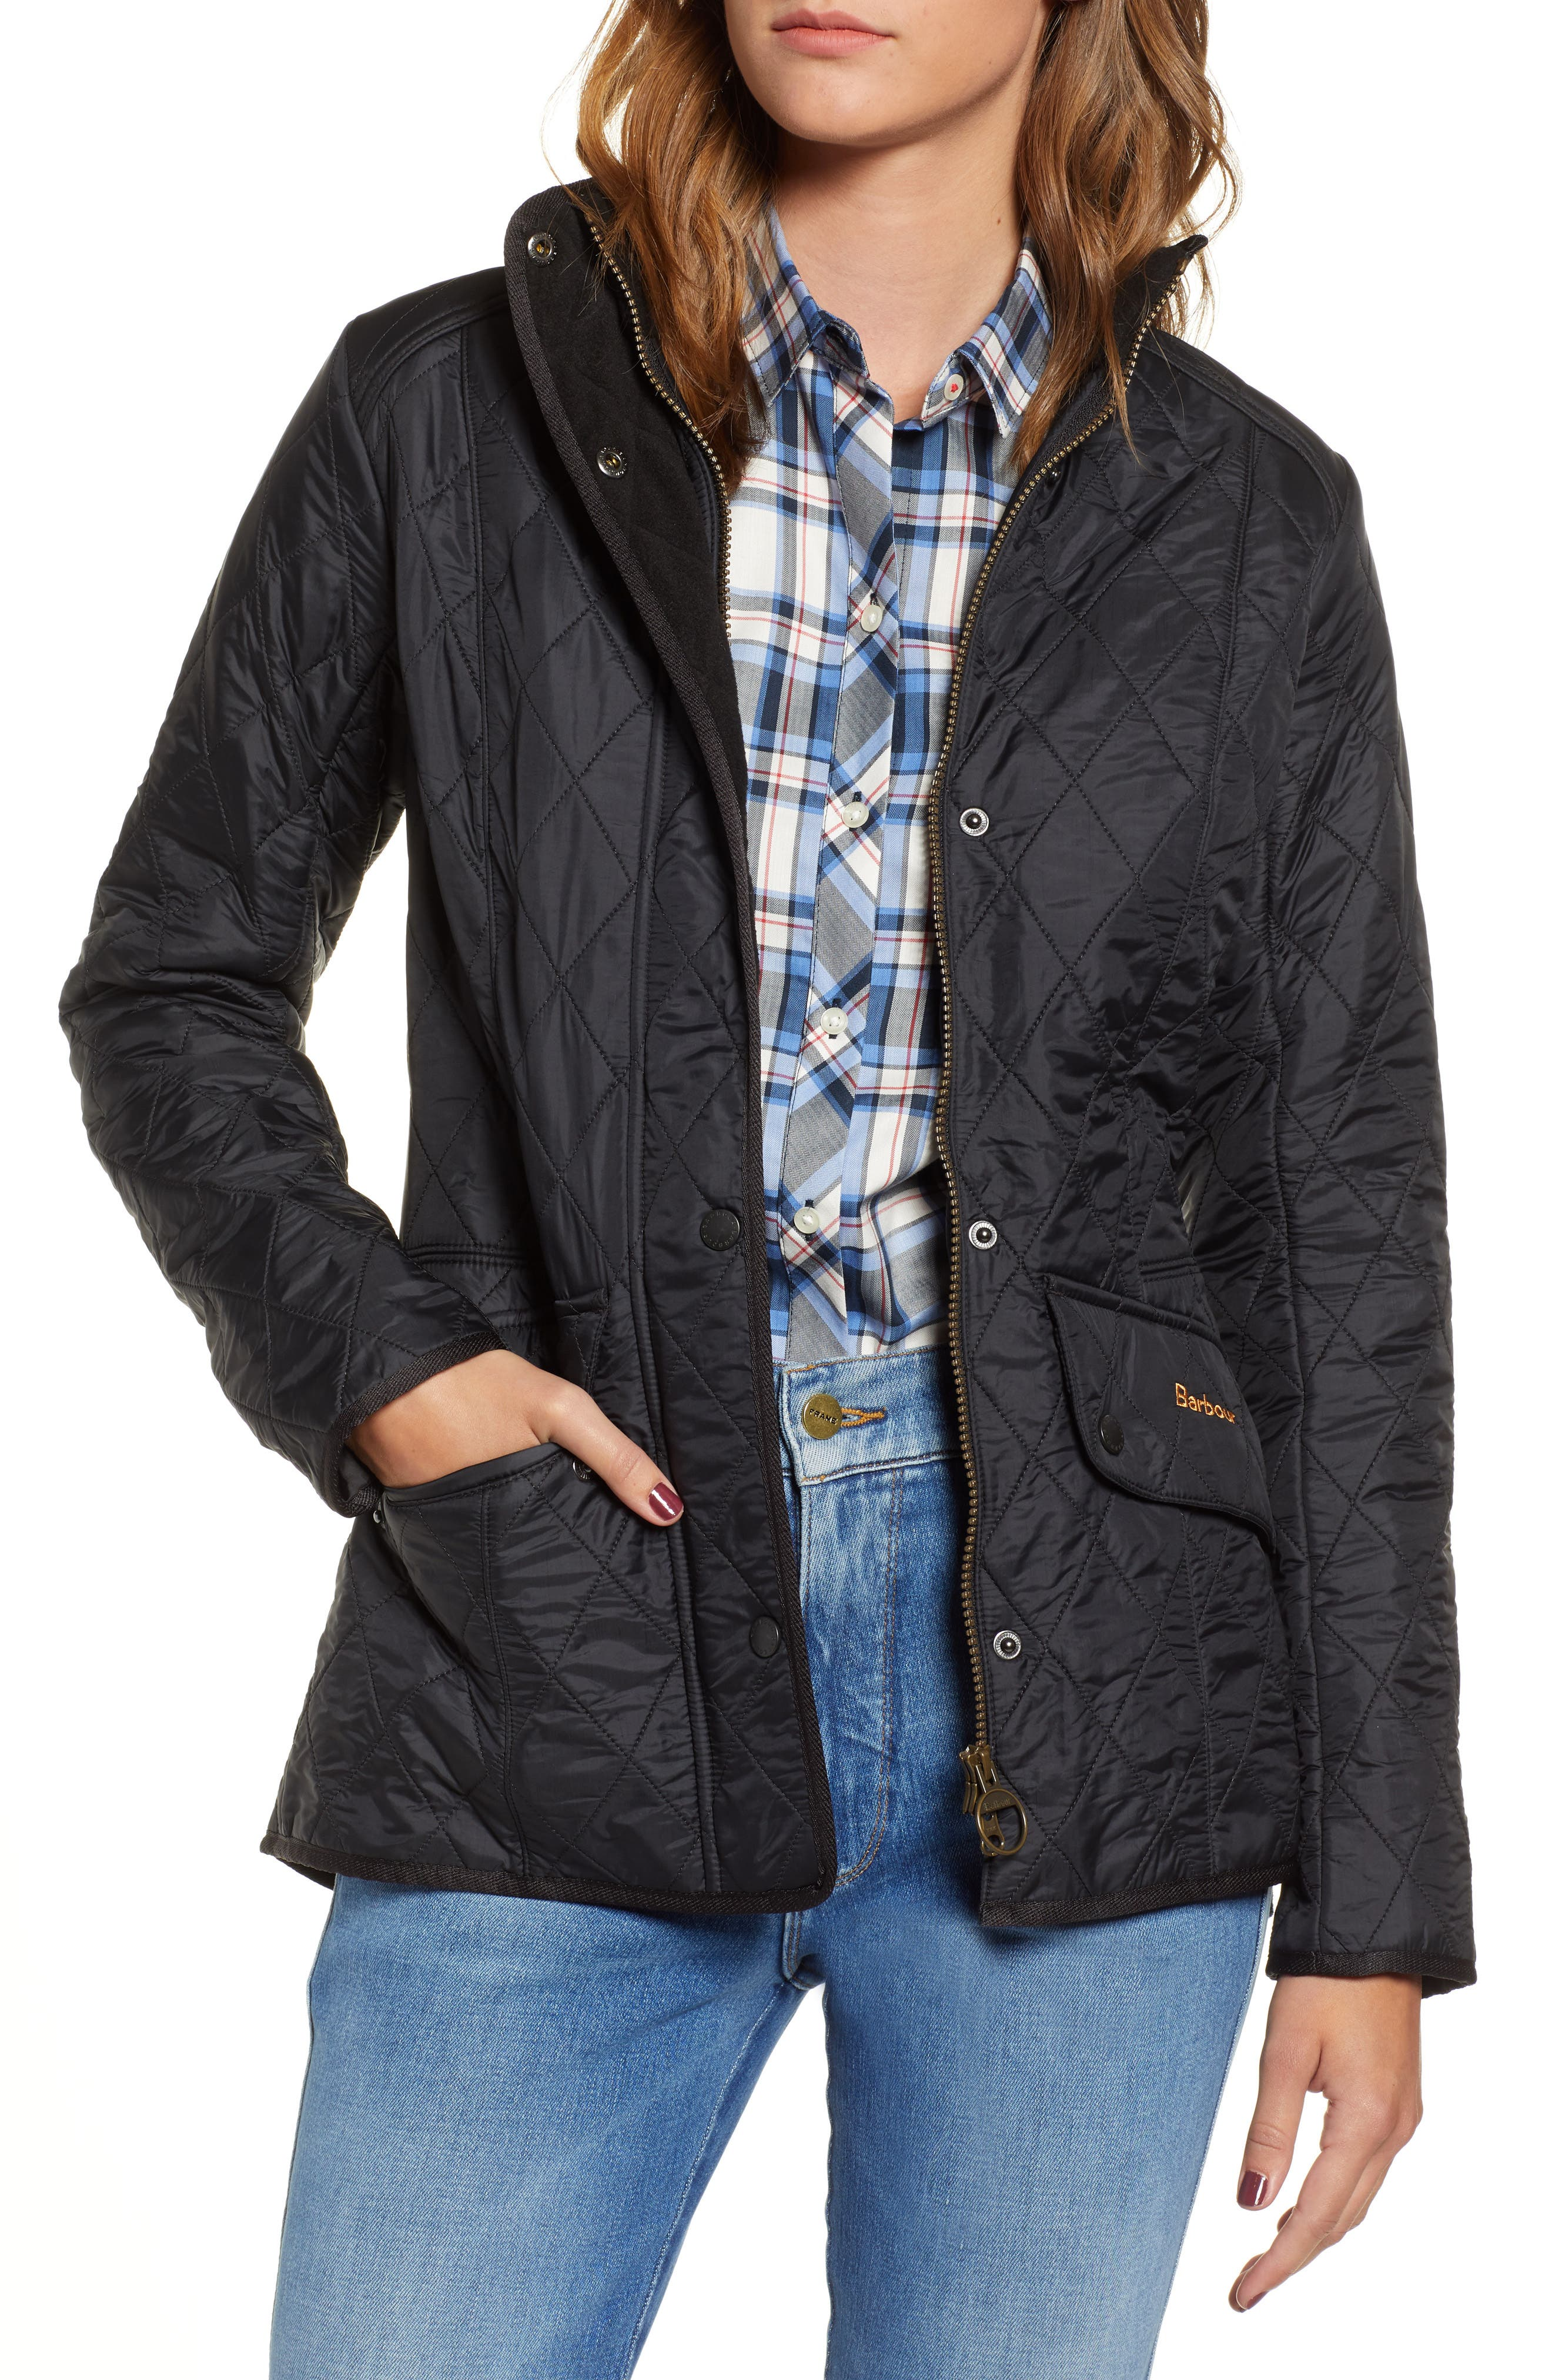 BARBOUR 'Cavalry' Quilted Jacket, Main, color, 001